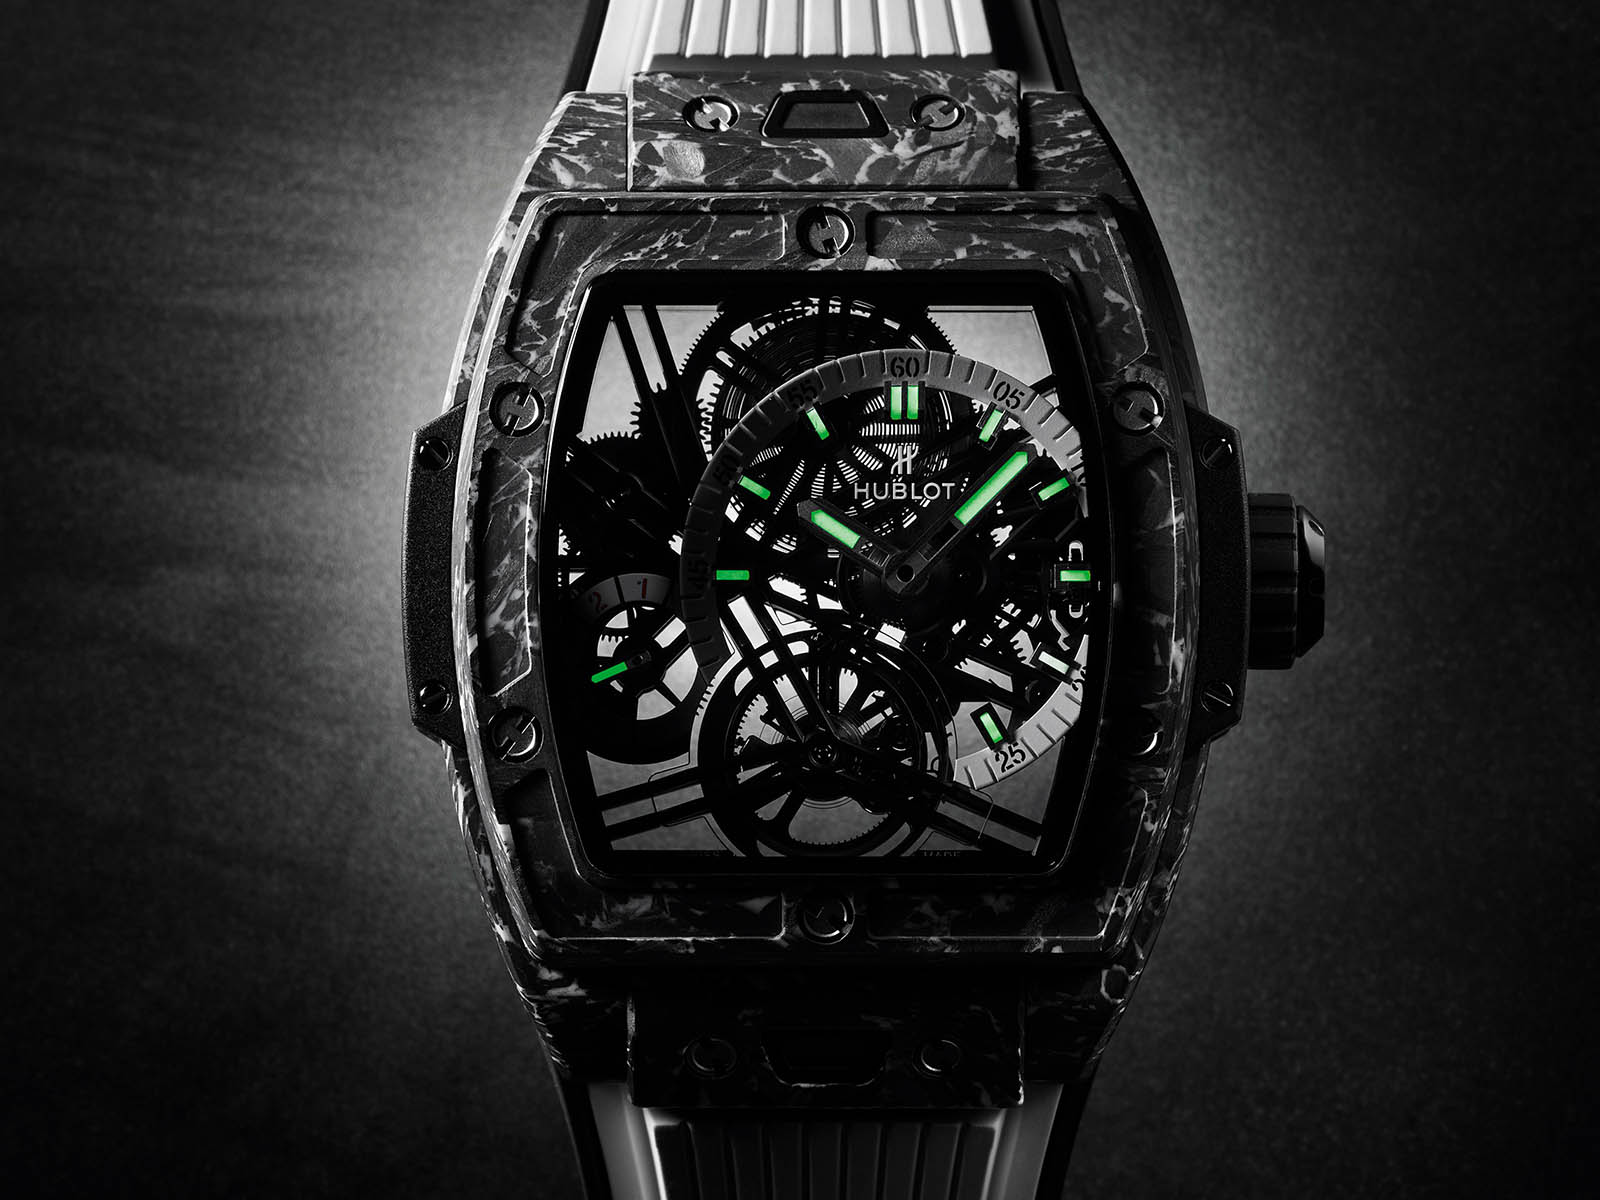 hublot-spirit-of-big-bang-tourbillon-5-day-power-reserve-carbon-white-5.jpg